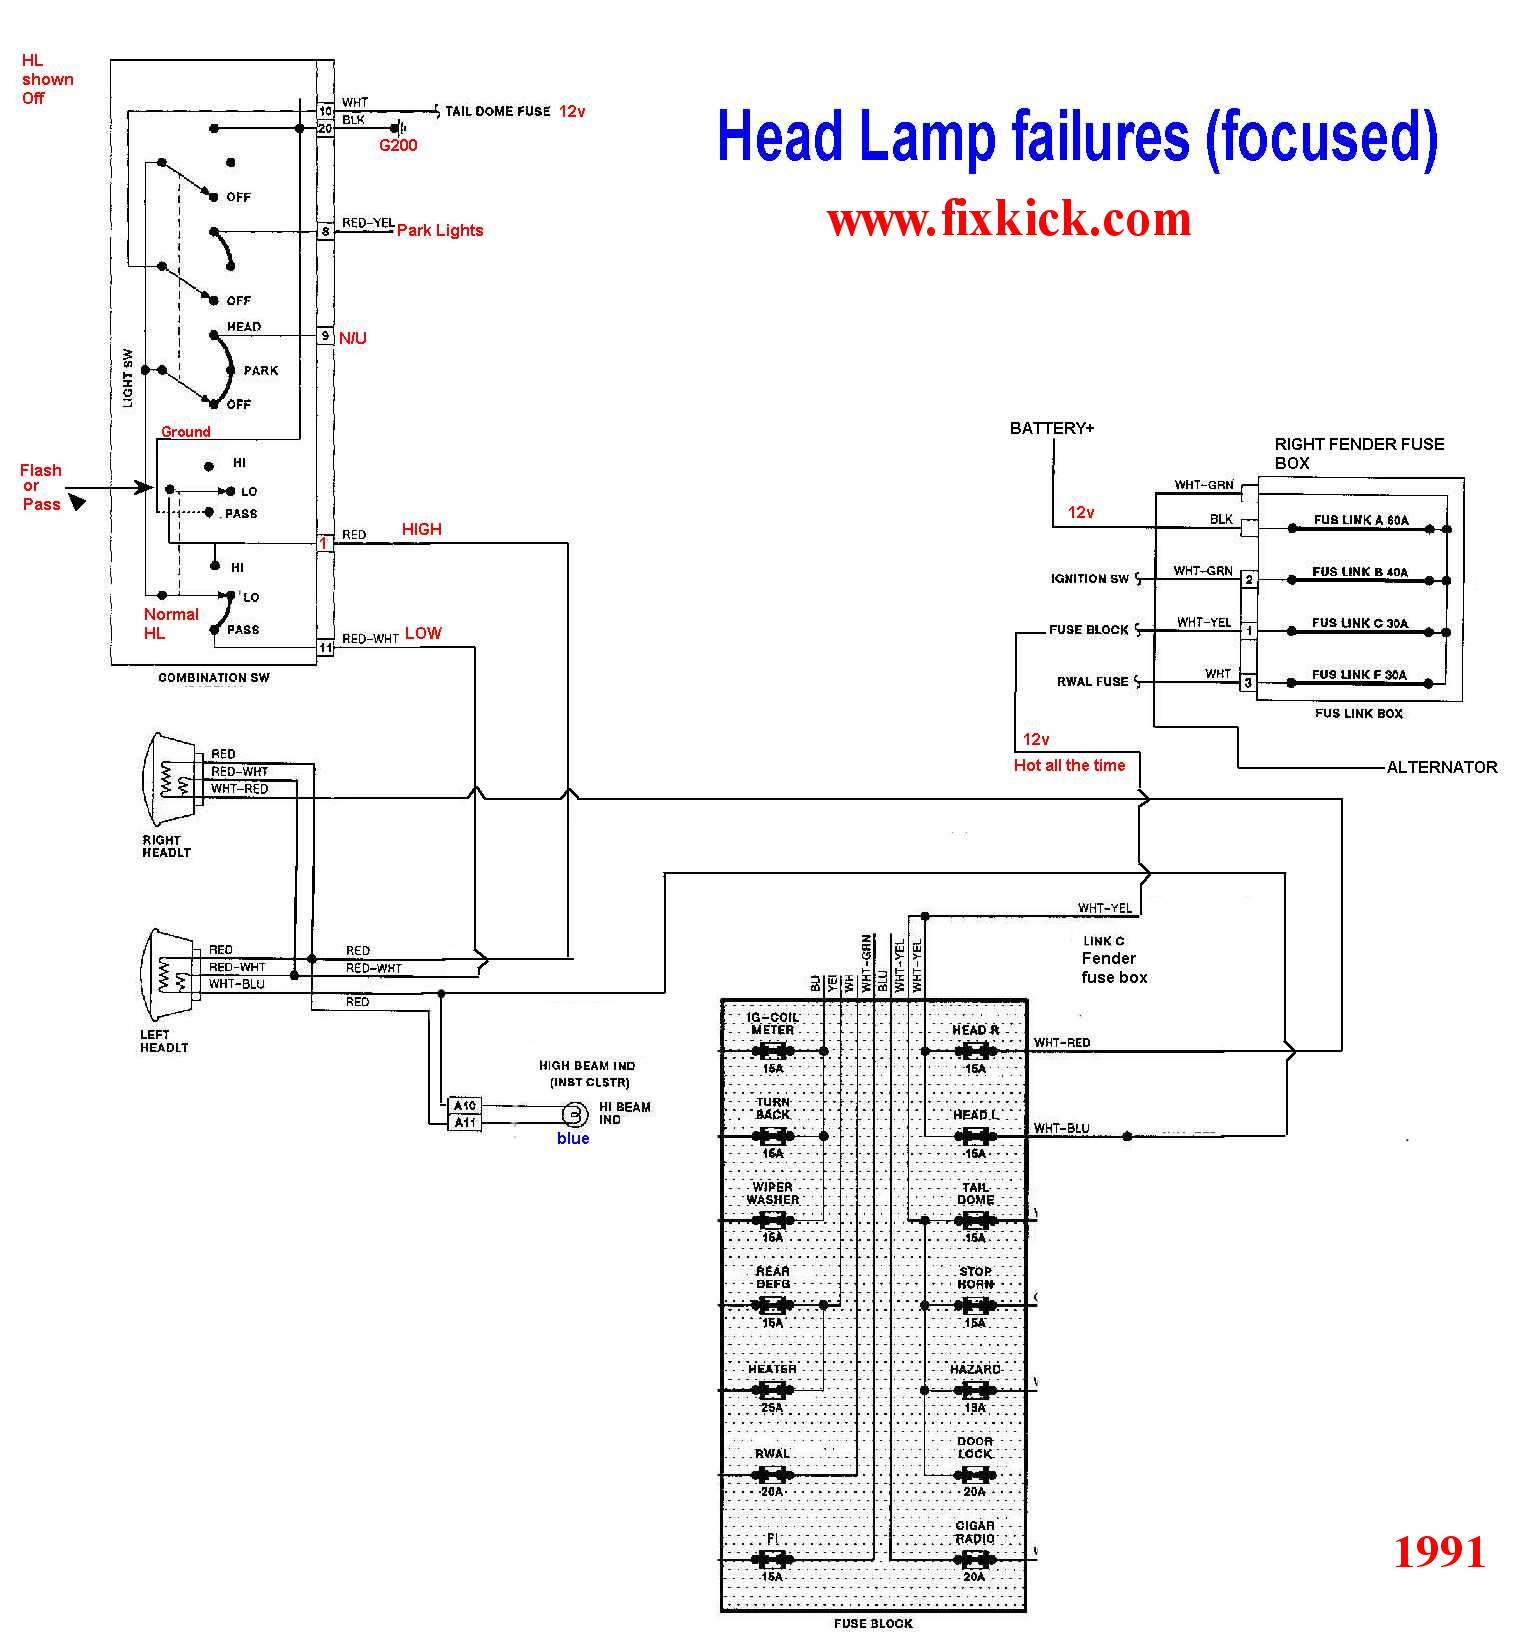 HL1A schematics to run engine suzuki samurai ignition wiring diagram at gsmx.co